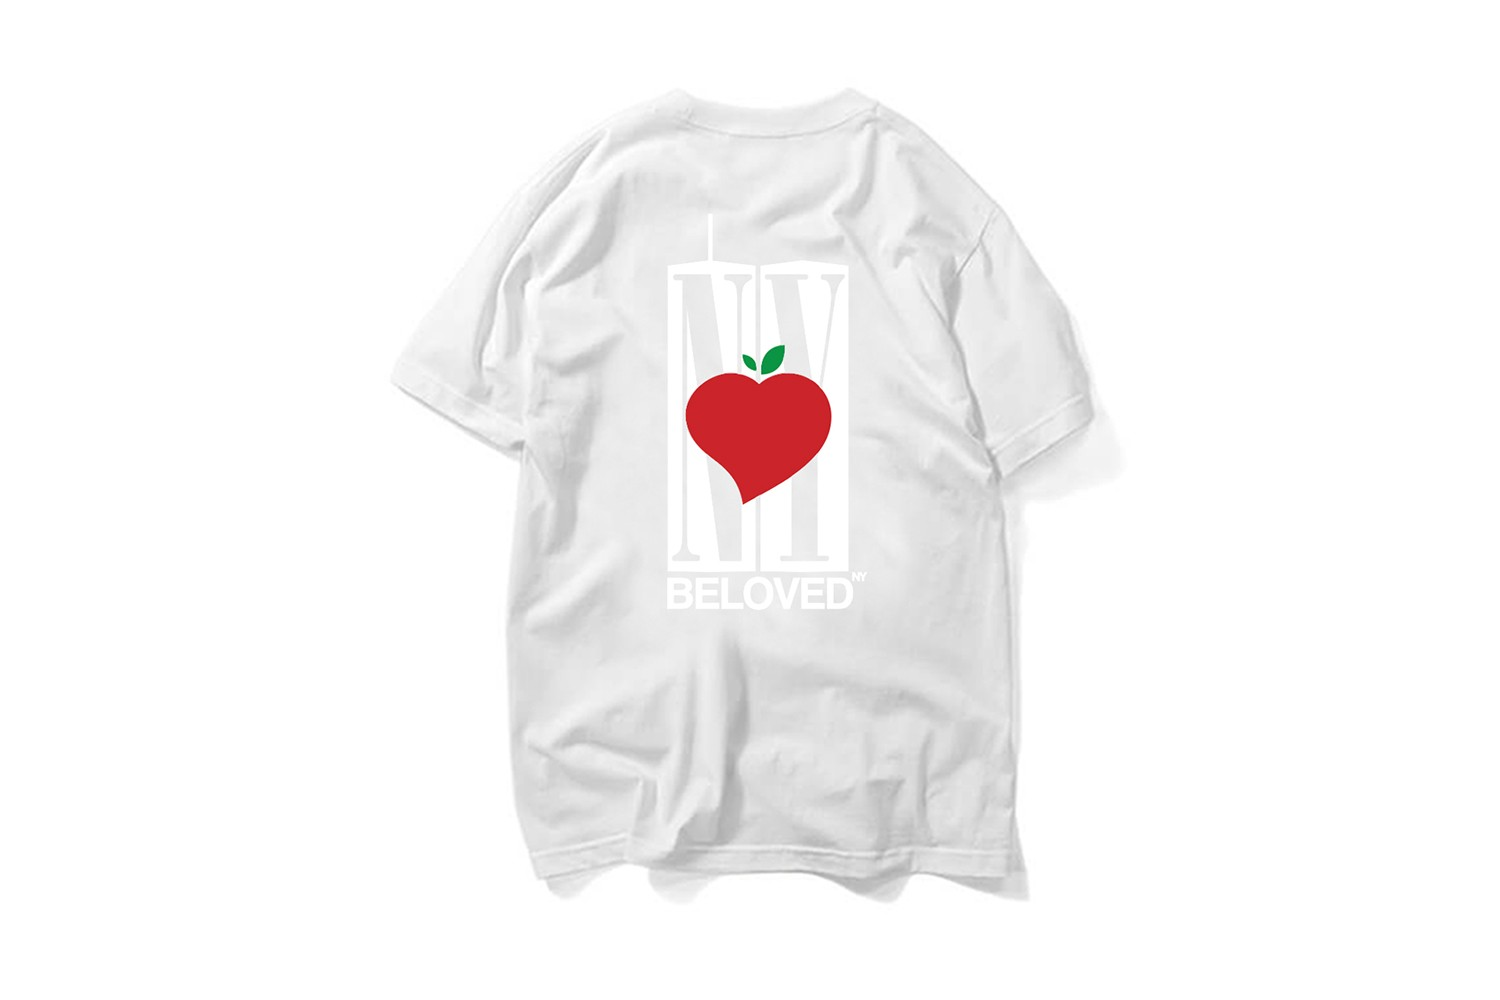 Beloved New York Never Forget Capsule Release Info Date Buy Price Necklace T shirt Cap